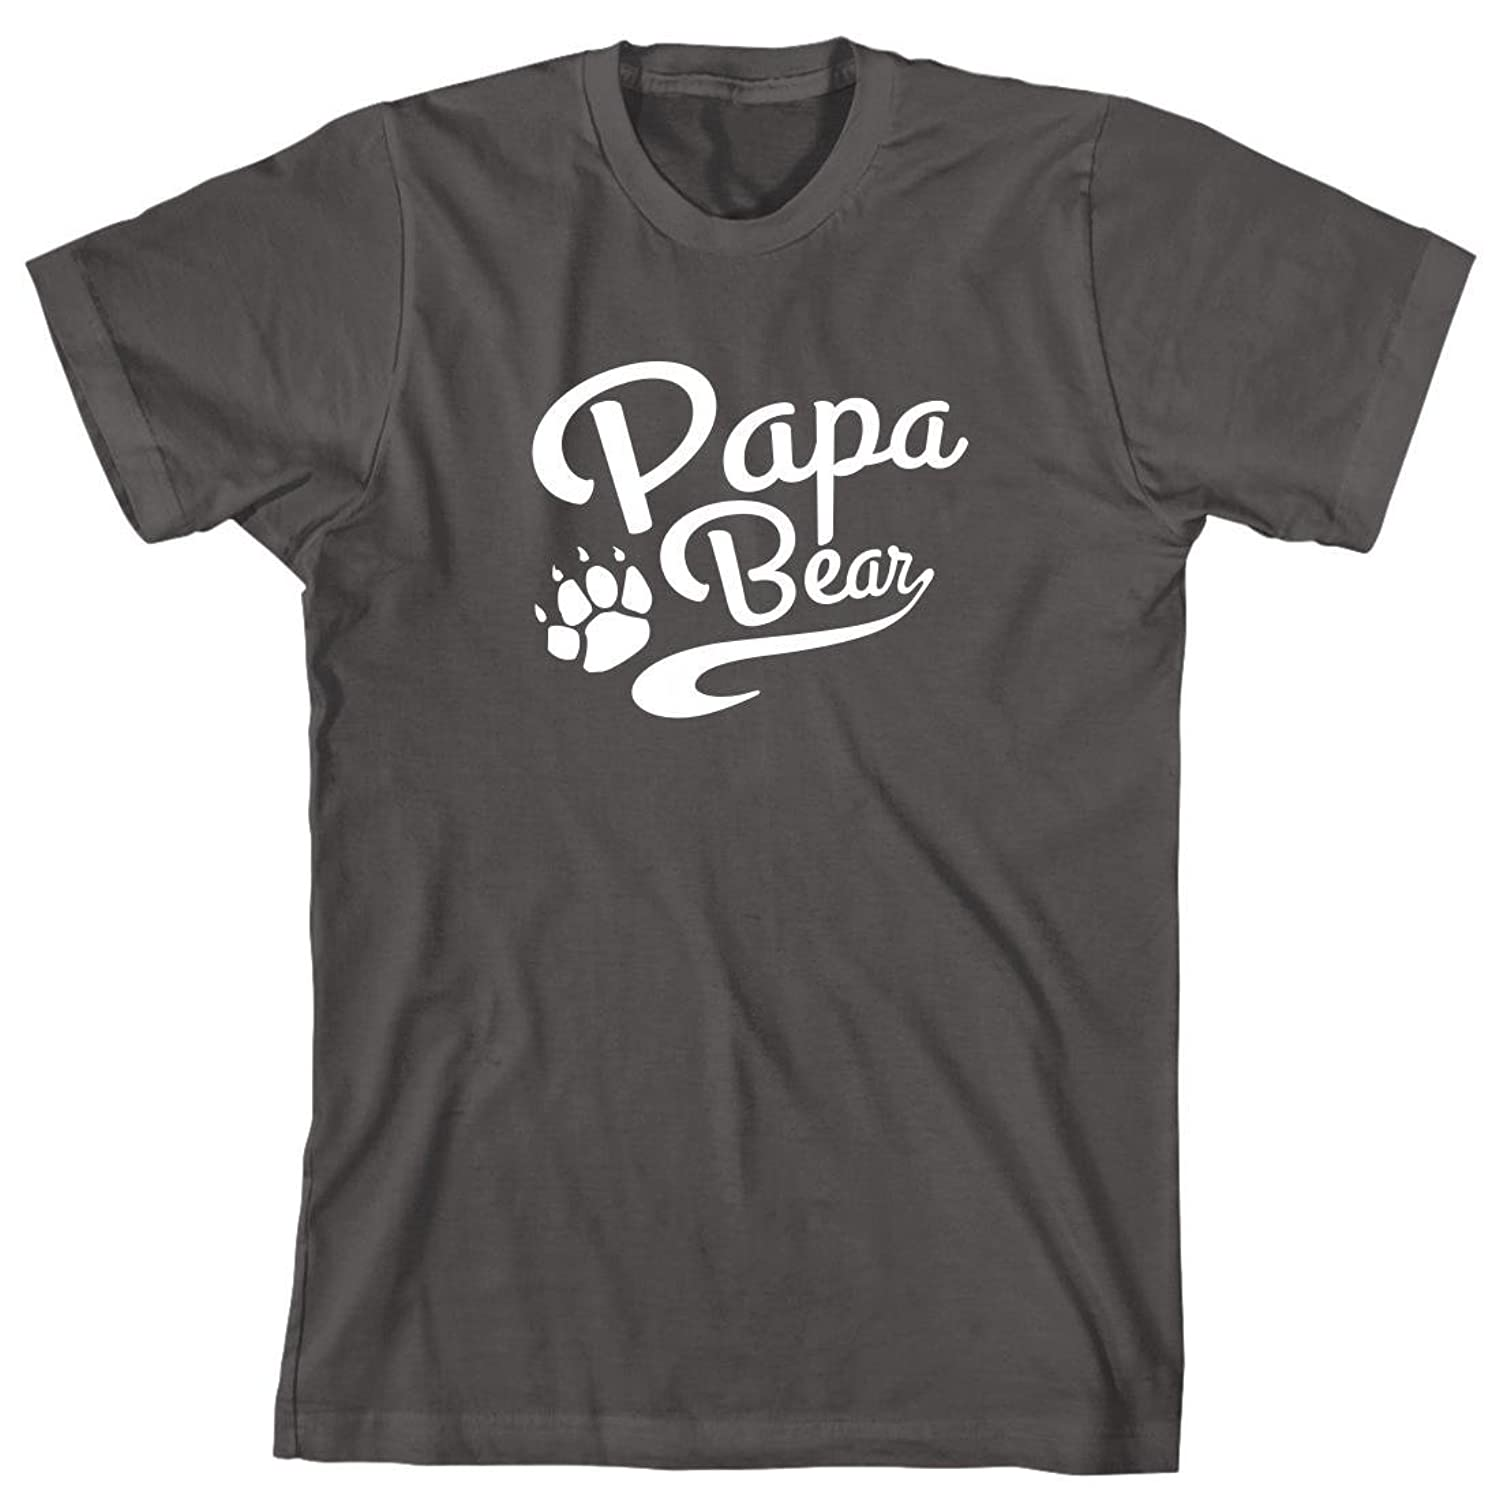 Papa Bear Men's Shirt